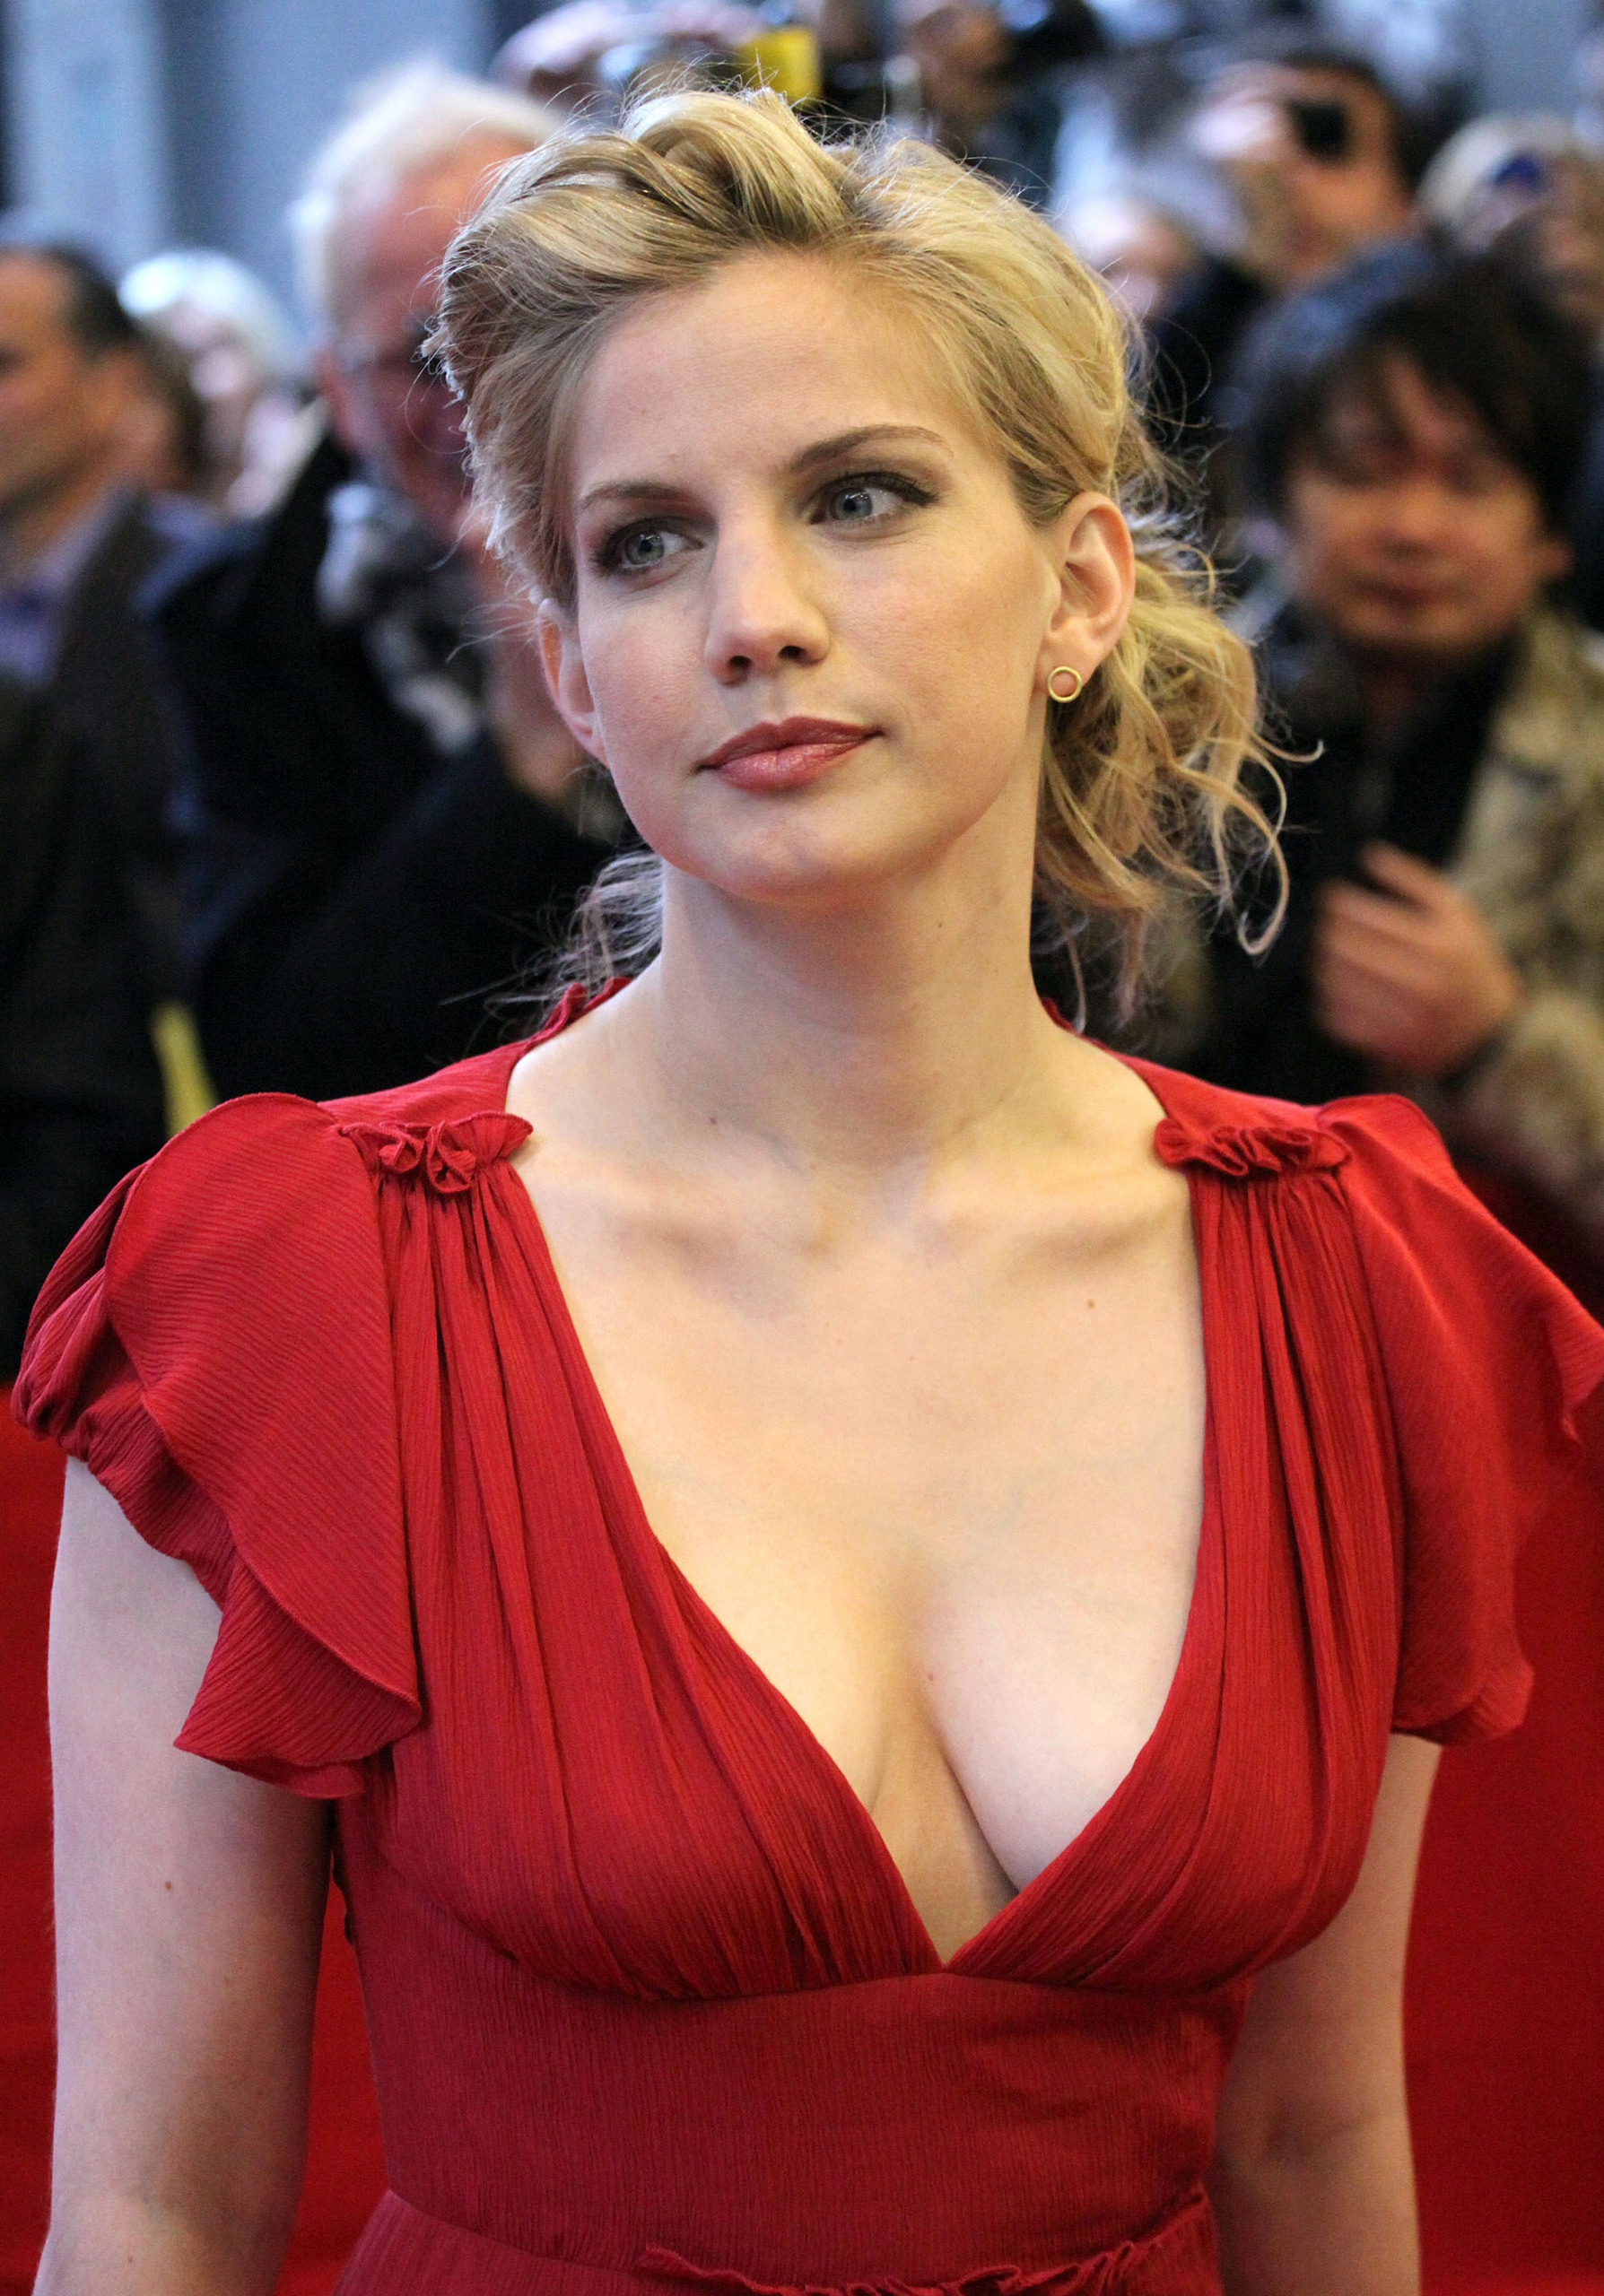 Anna Chlumsky Height Weight Age Bra Size Body Stats Affairs Boy Friends